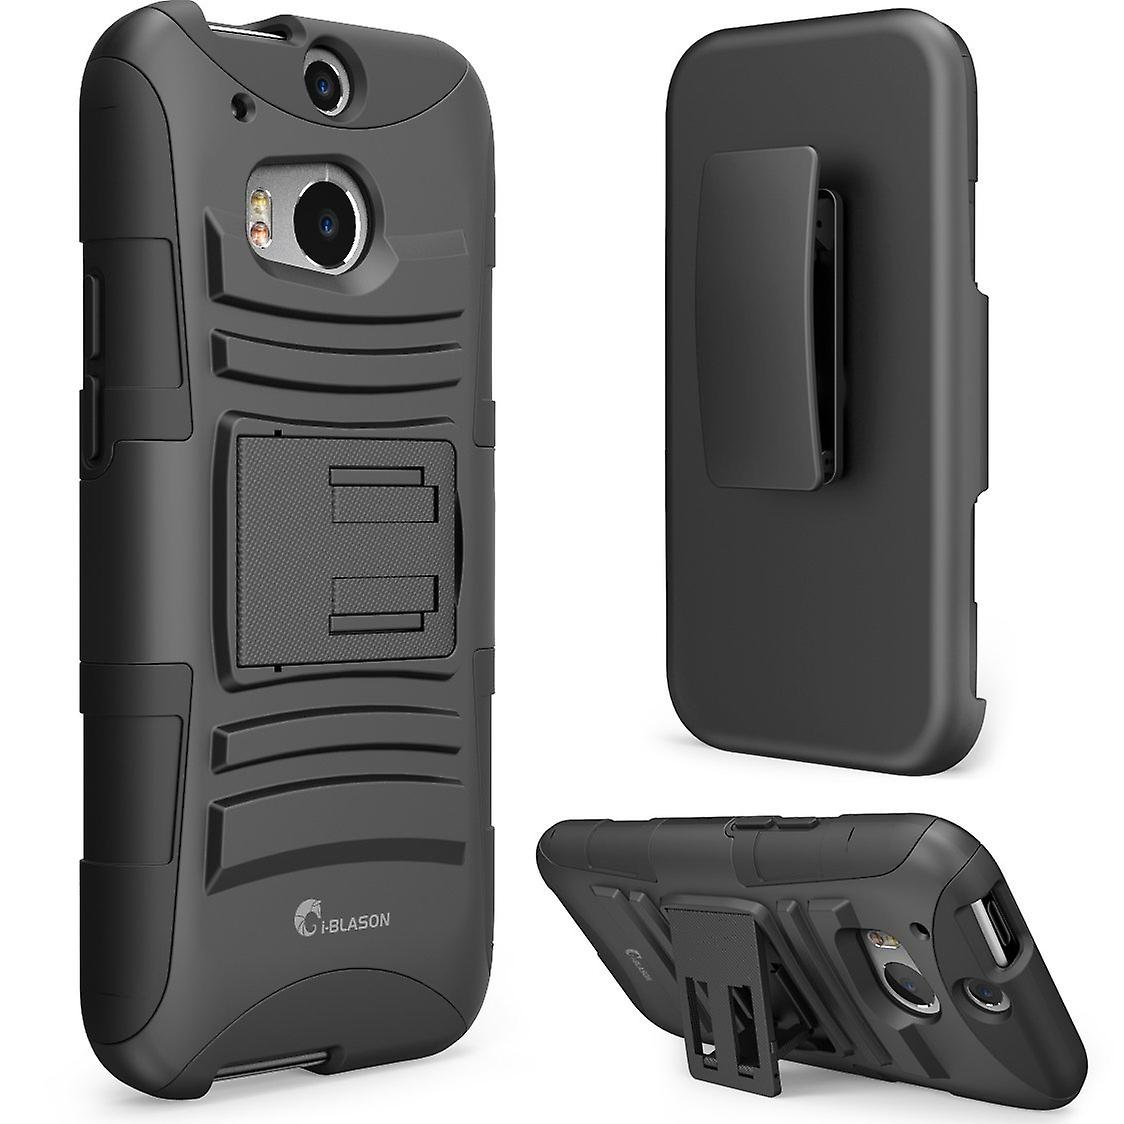 finest selection 41228 d06dc HTC One m8 Case, i-Blason Prime Series Dual Layer Holster Cover with  Kickstand and Locking Belt For HTC One -Black